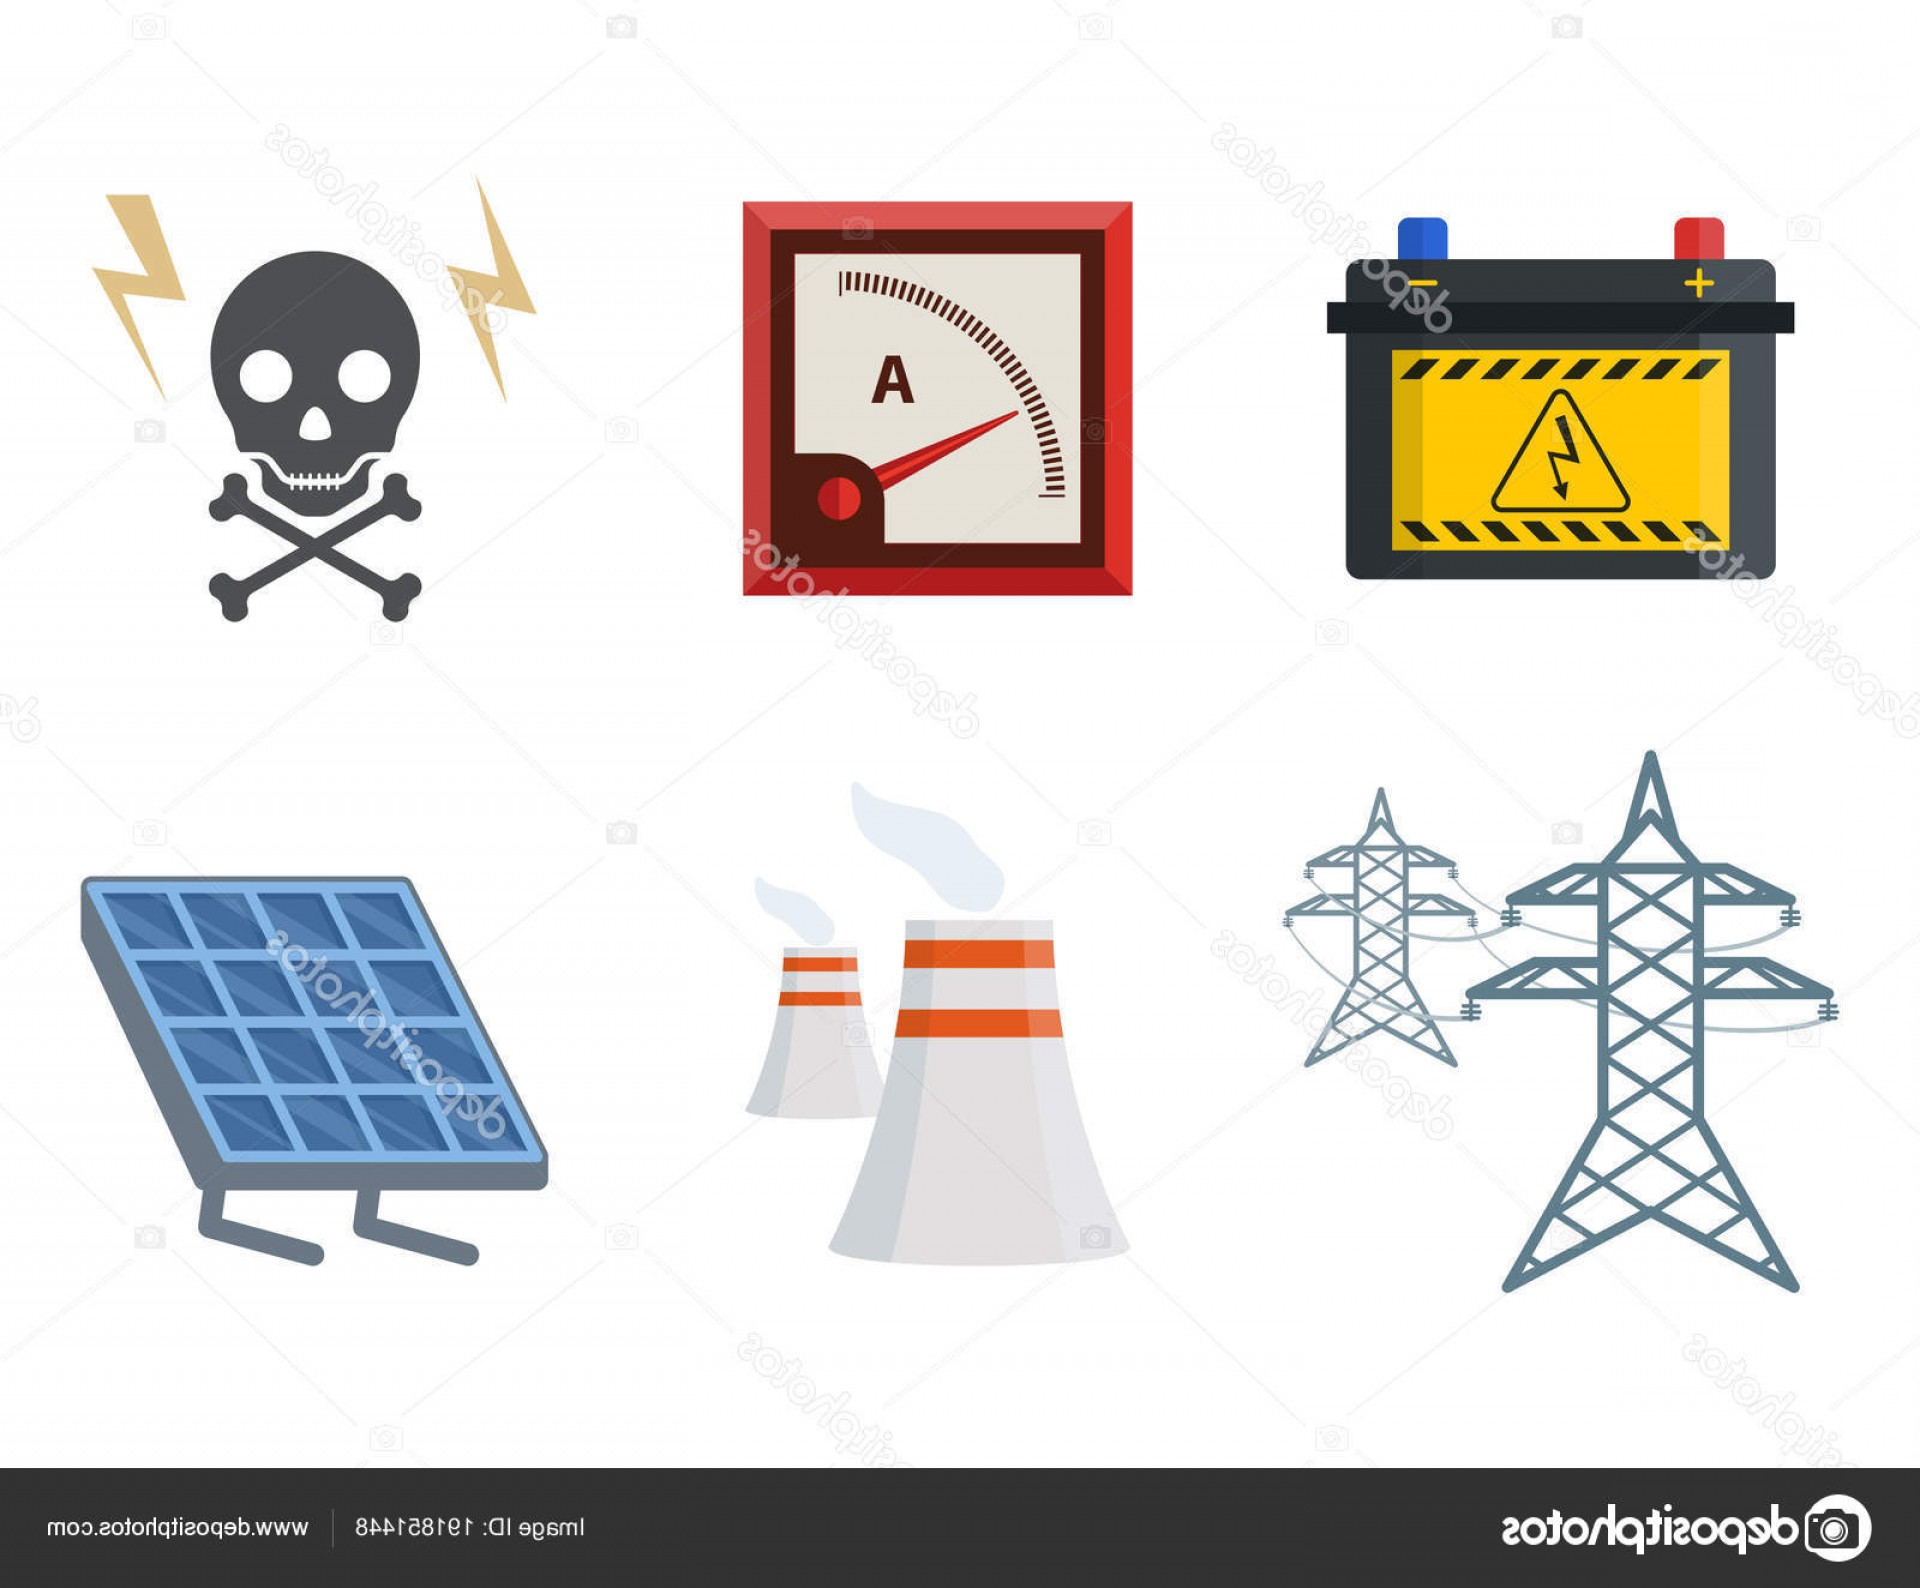 Battery Electricity Vector Images: Stock Illustration Energy Electricity Vector Power Icons